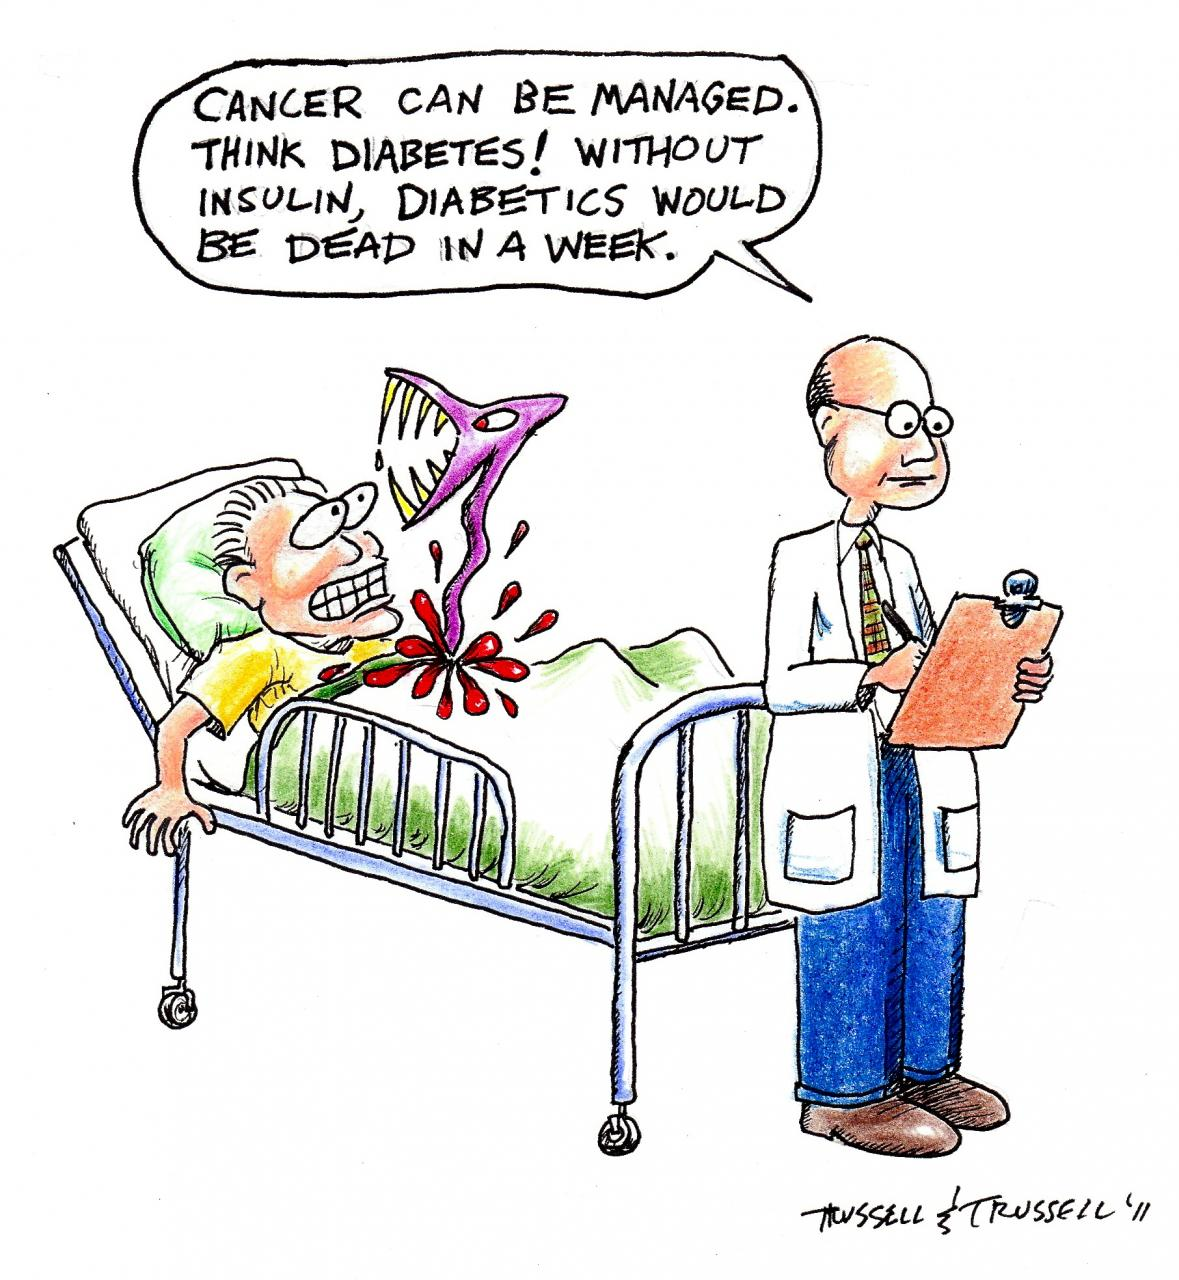 Cancer Cartoons